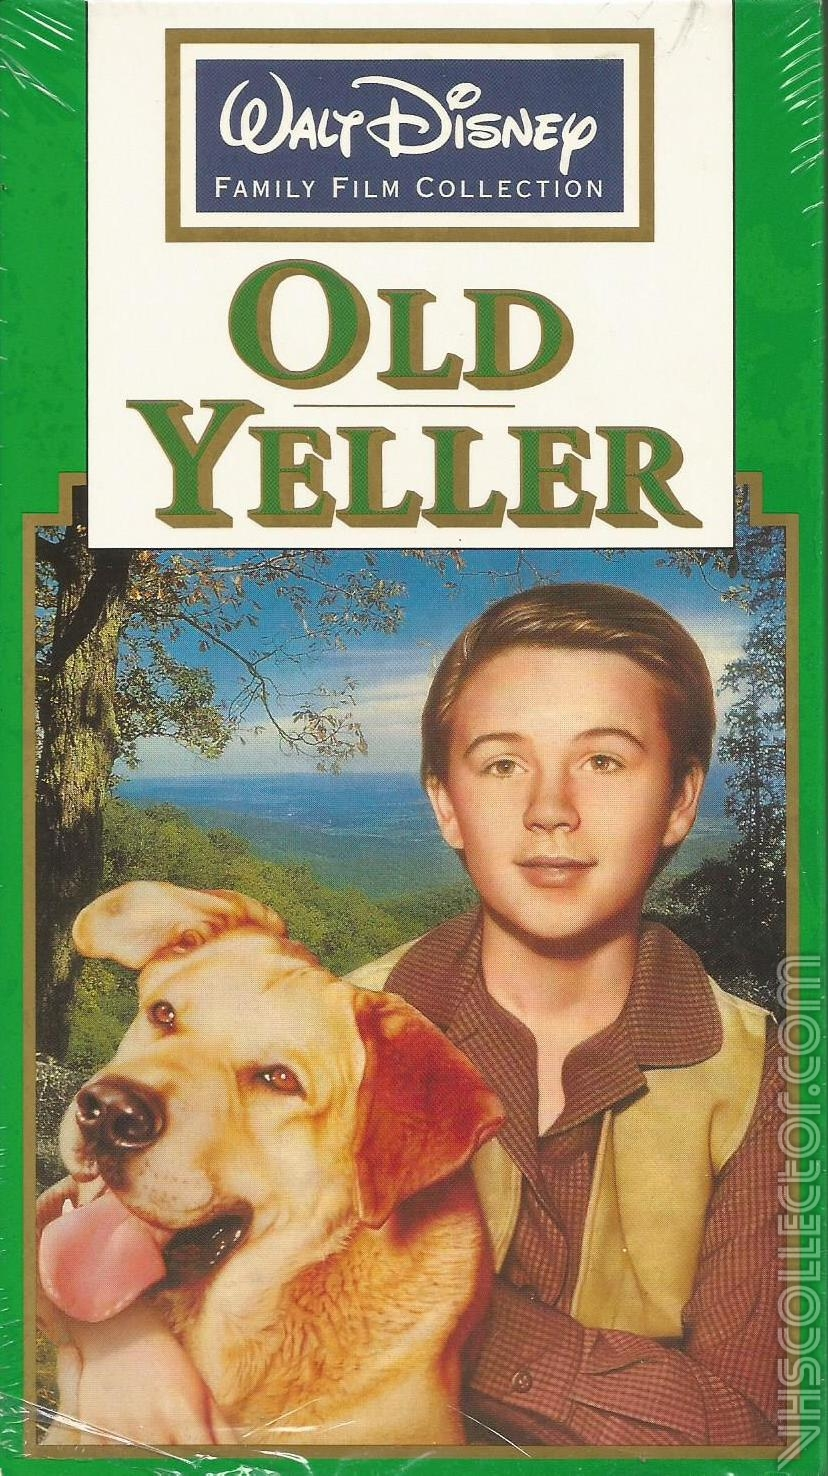 Old Yeller (1991-1996 VHS)